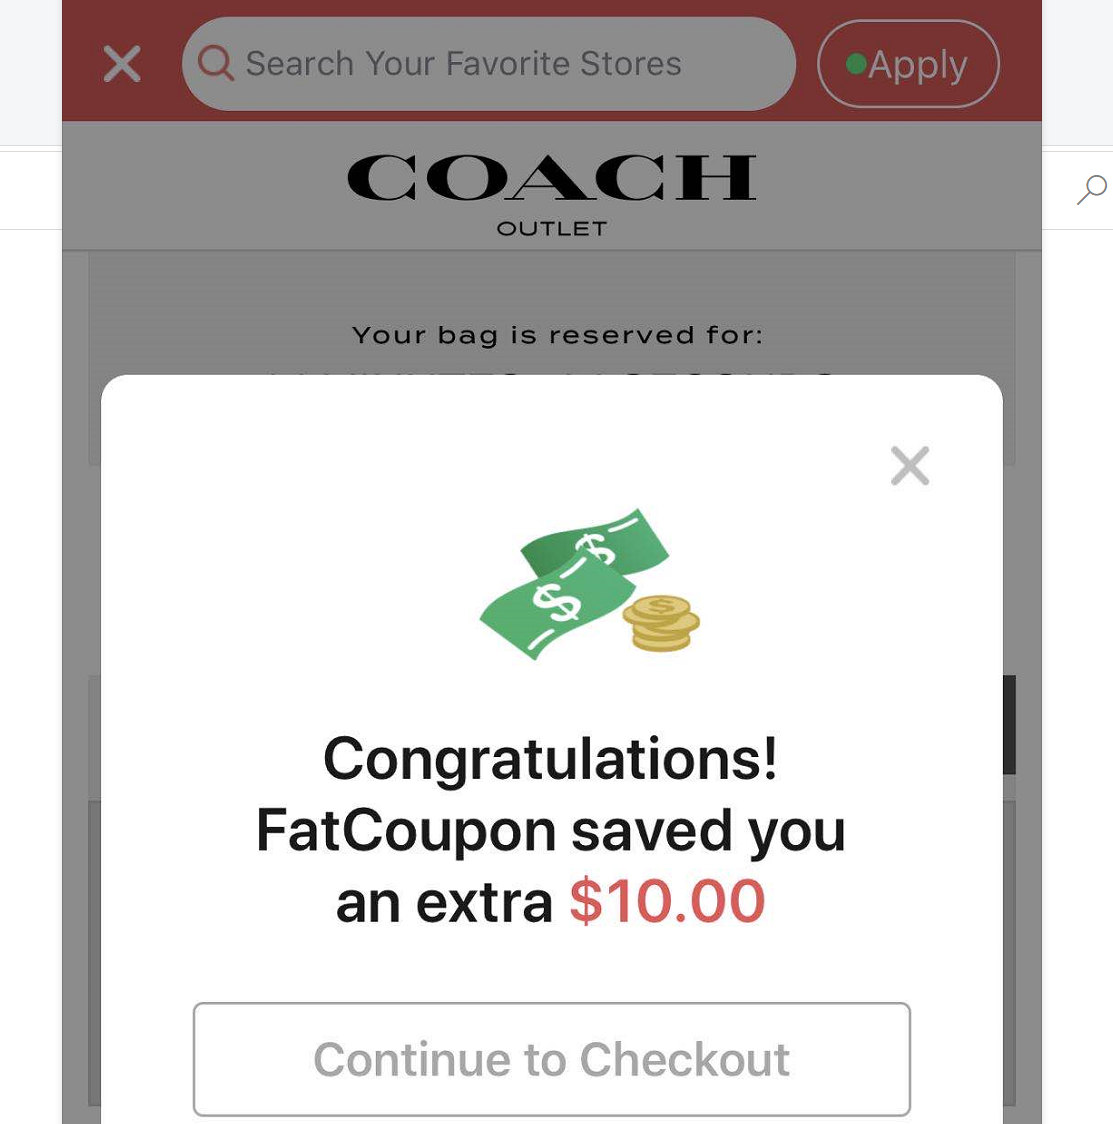 Coach Outlet: EXTA $10 off $100 Coupon with FatCoupon